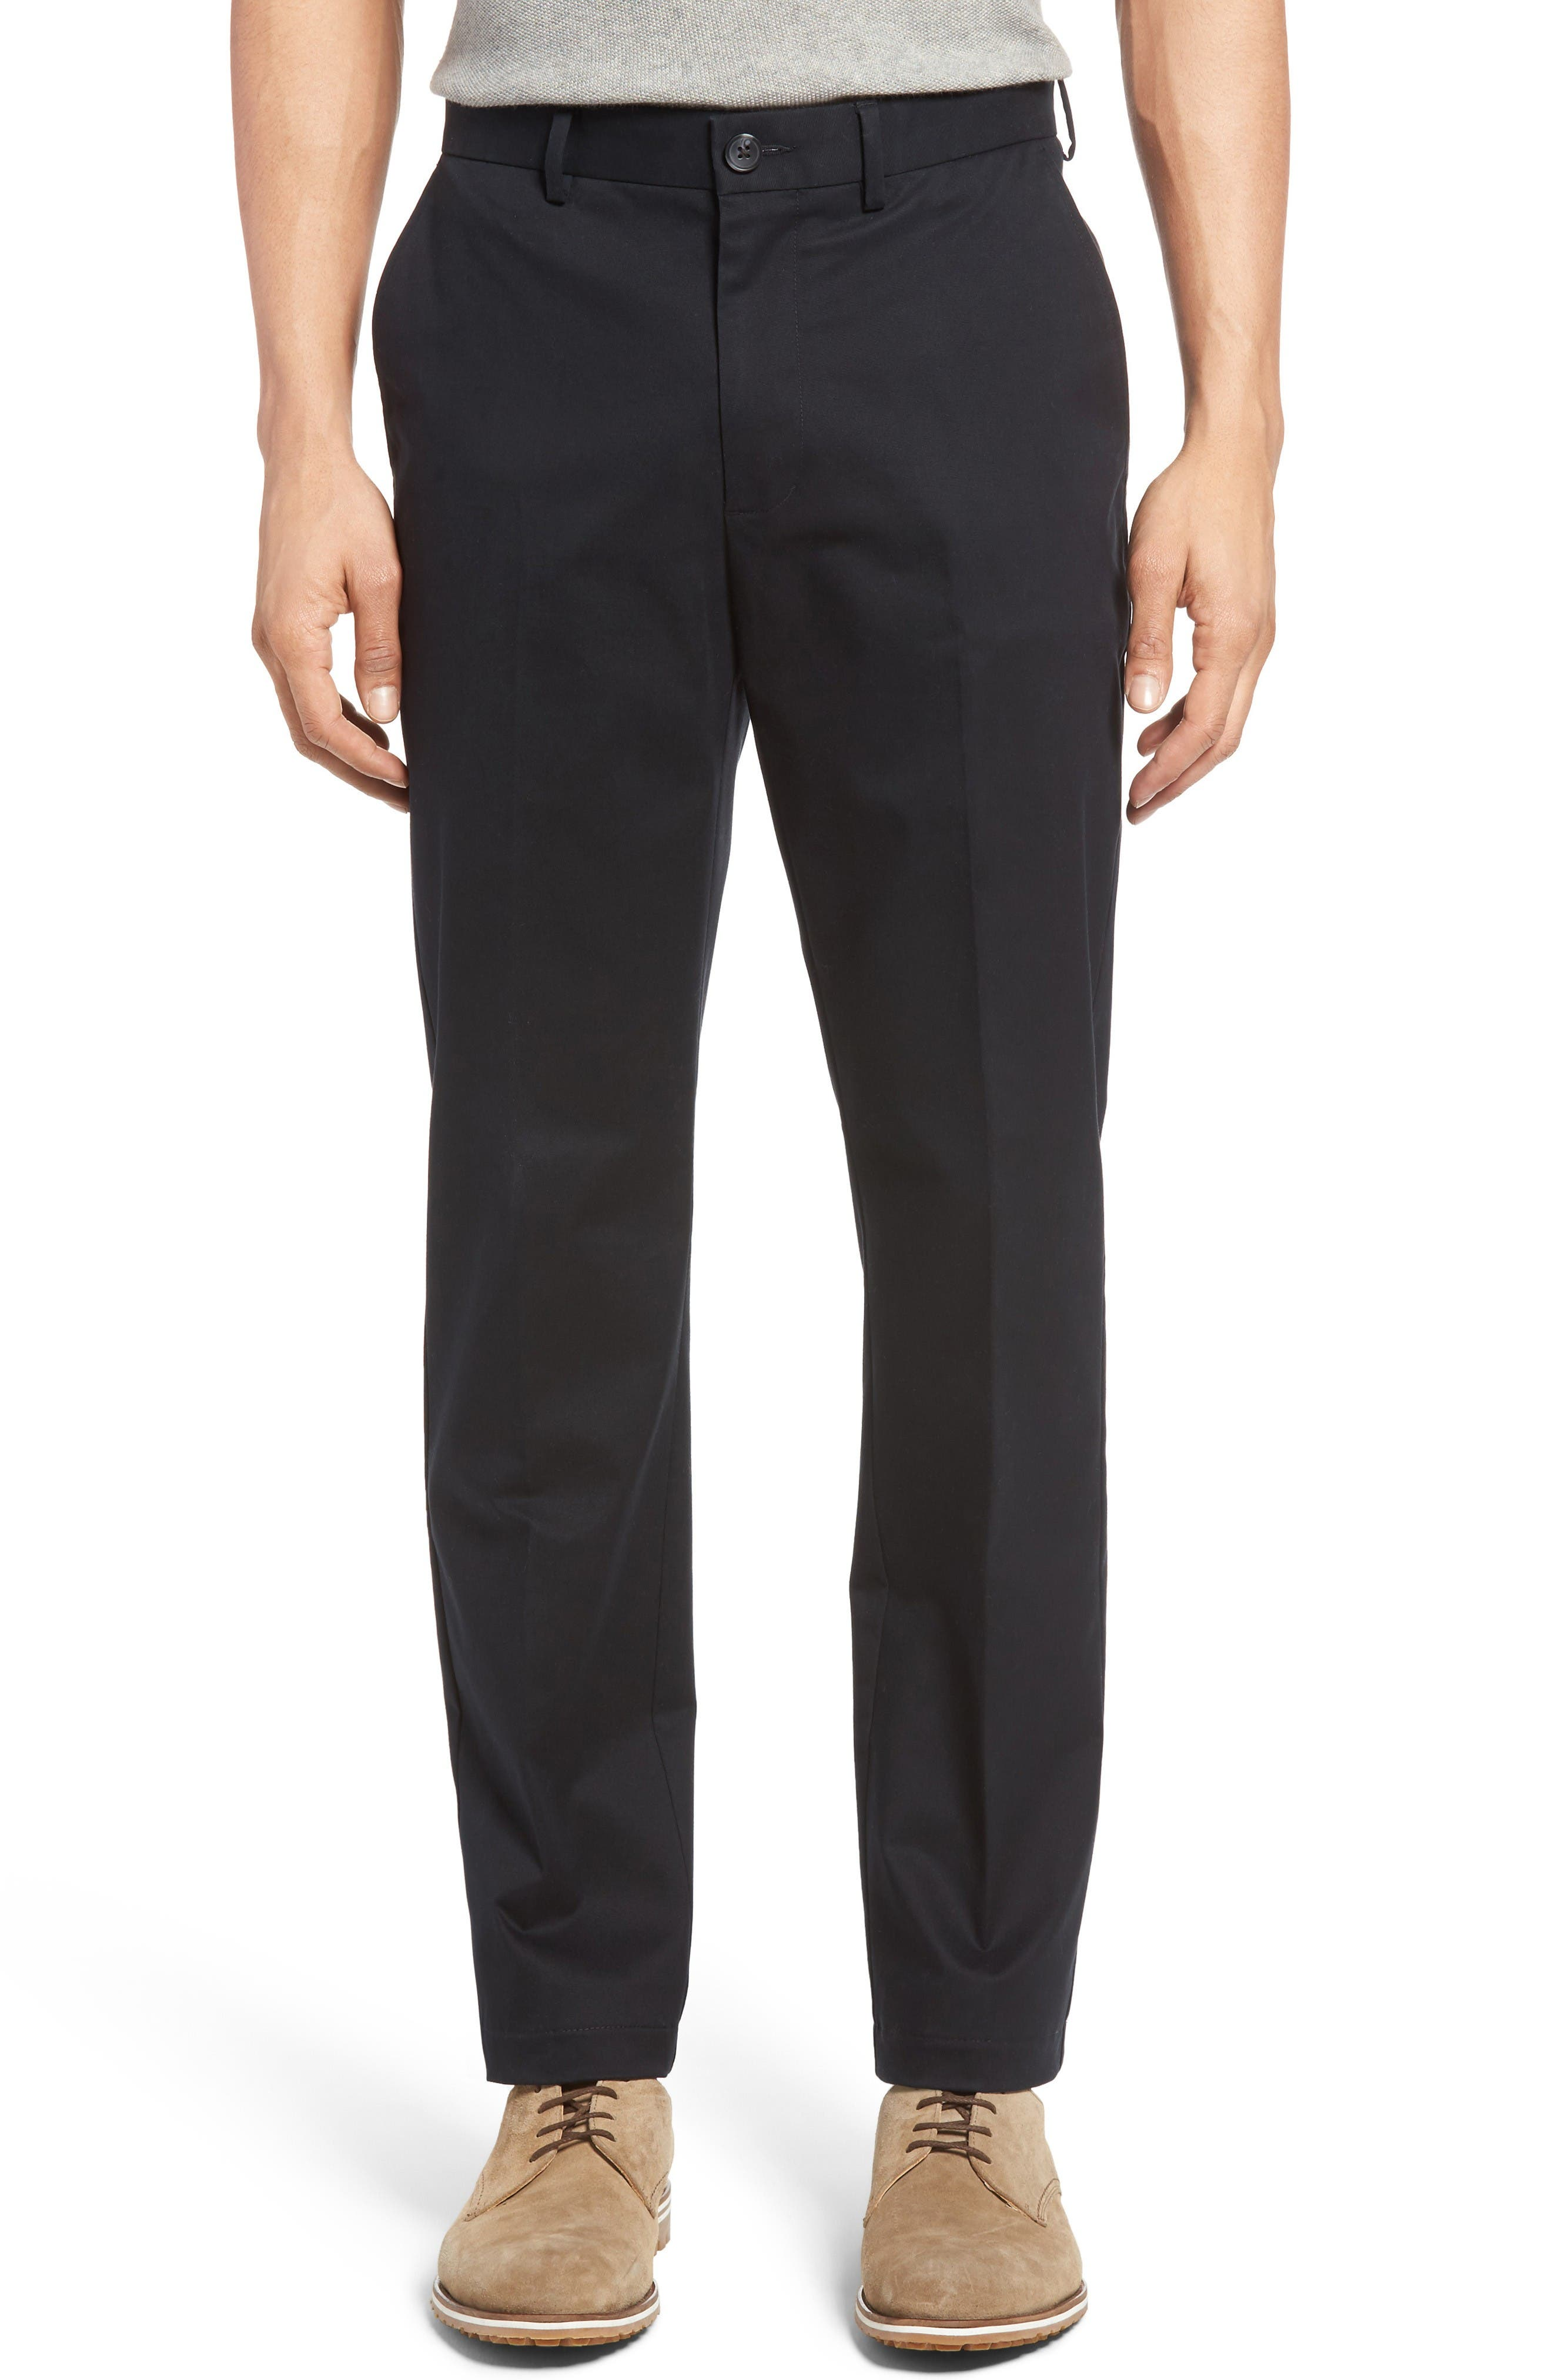 Nordstrom Men's Shop Georgetown Chinos (Regular)